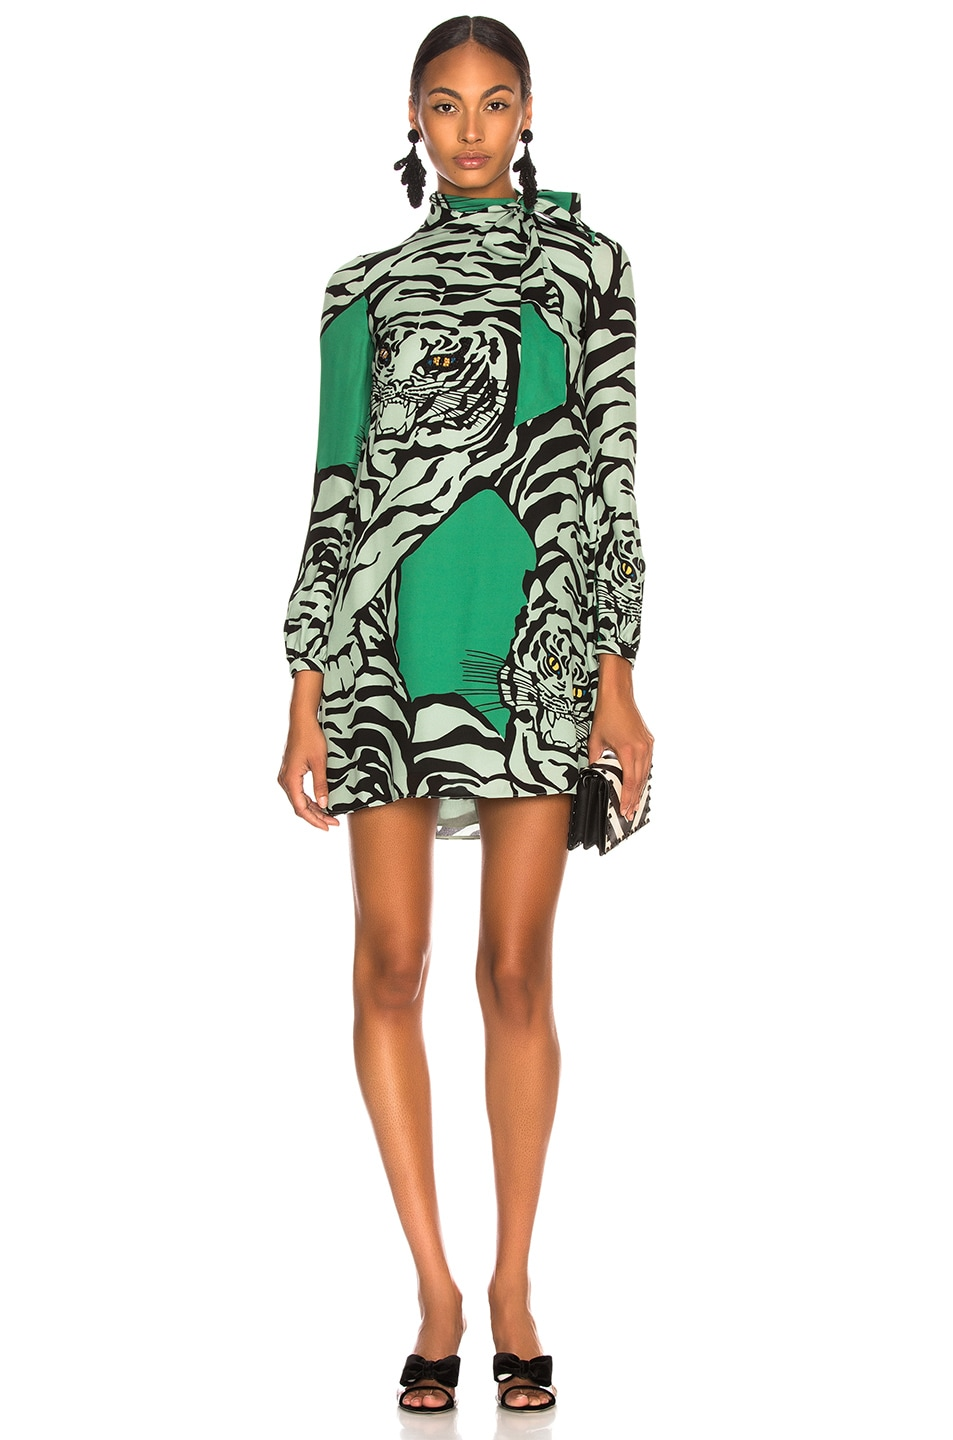 76c4bf780b Image 1 of Valentino Georgette Tiger Print Dress in Green   Powder Green